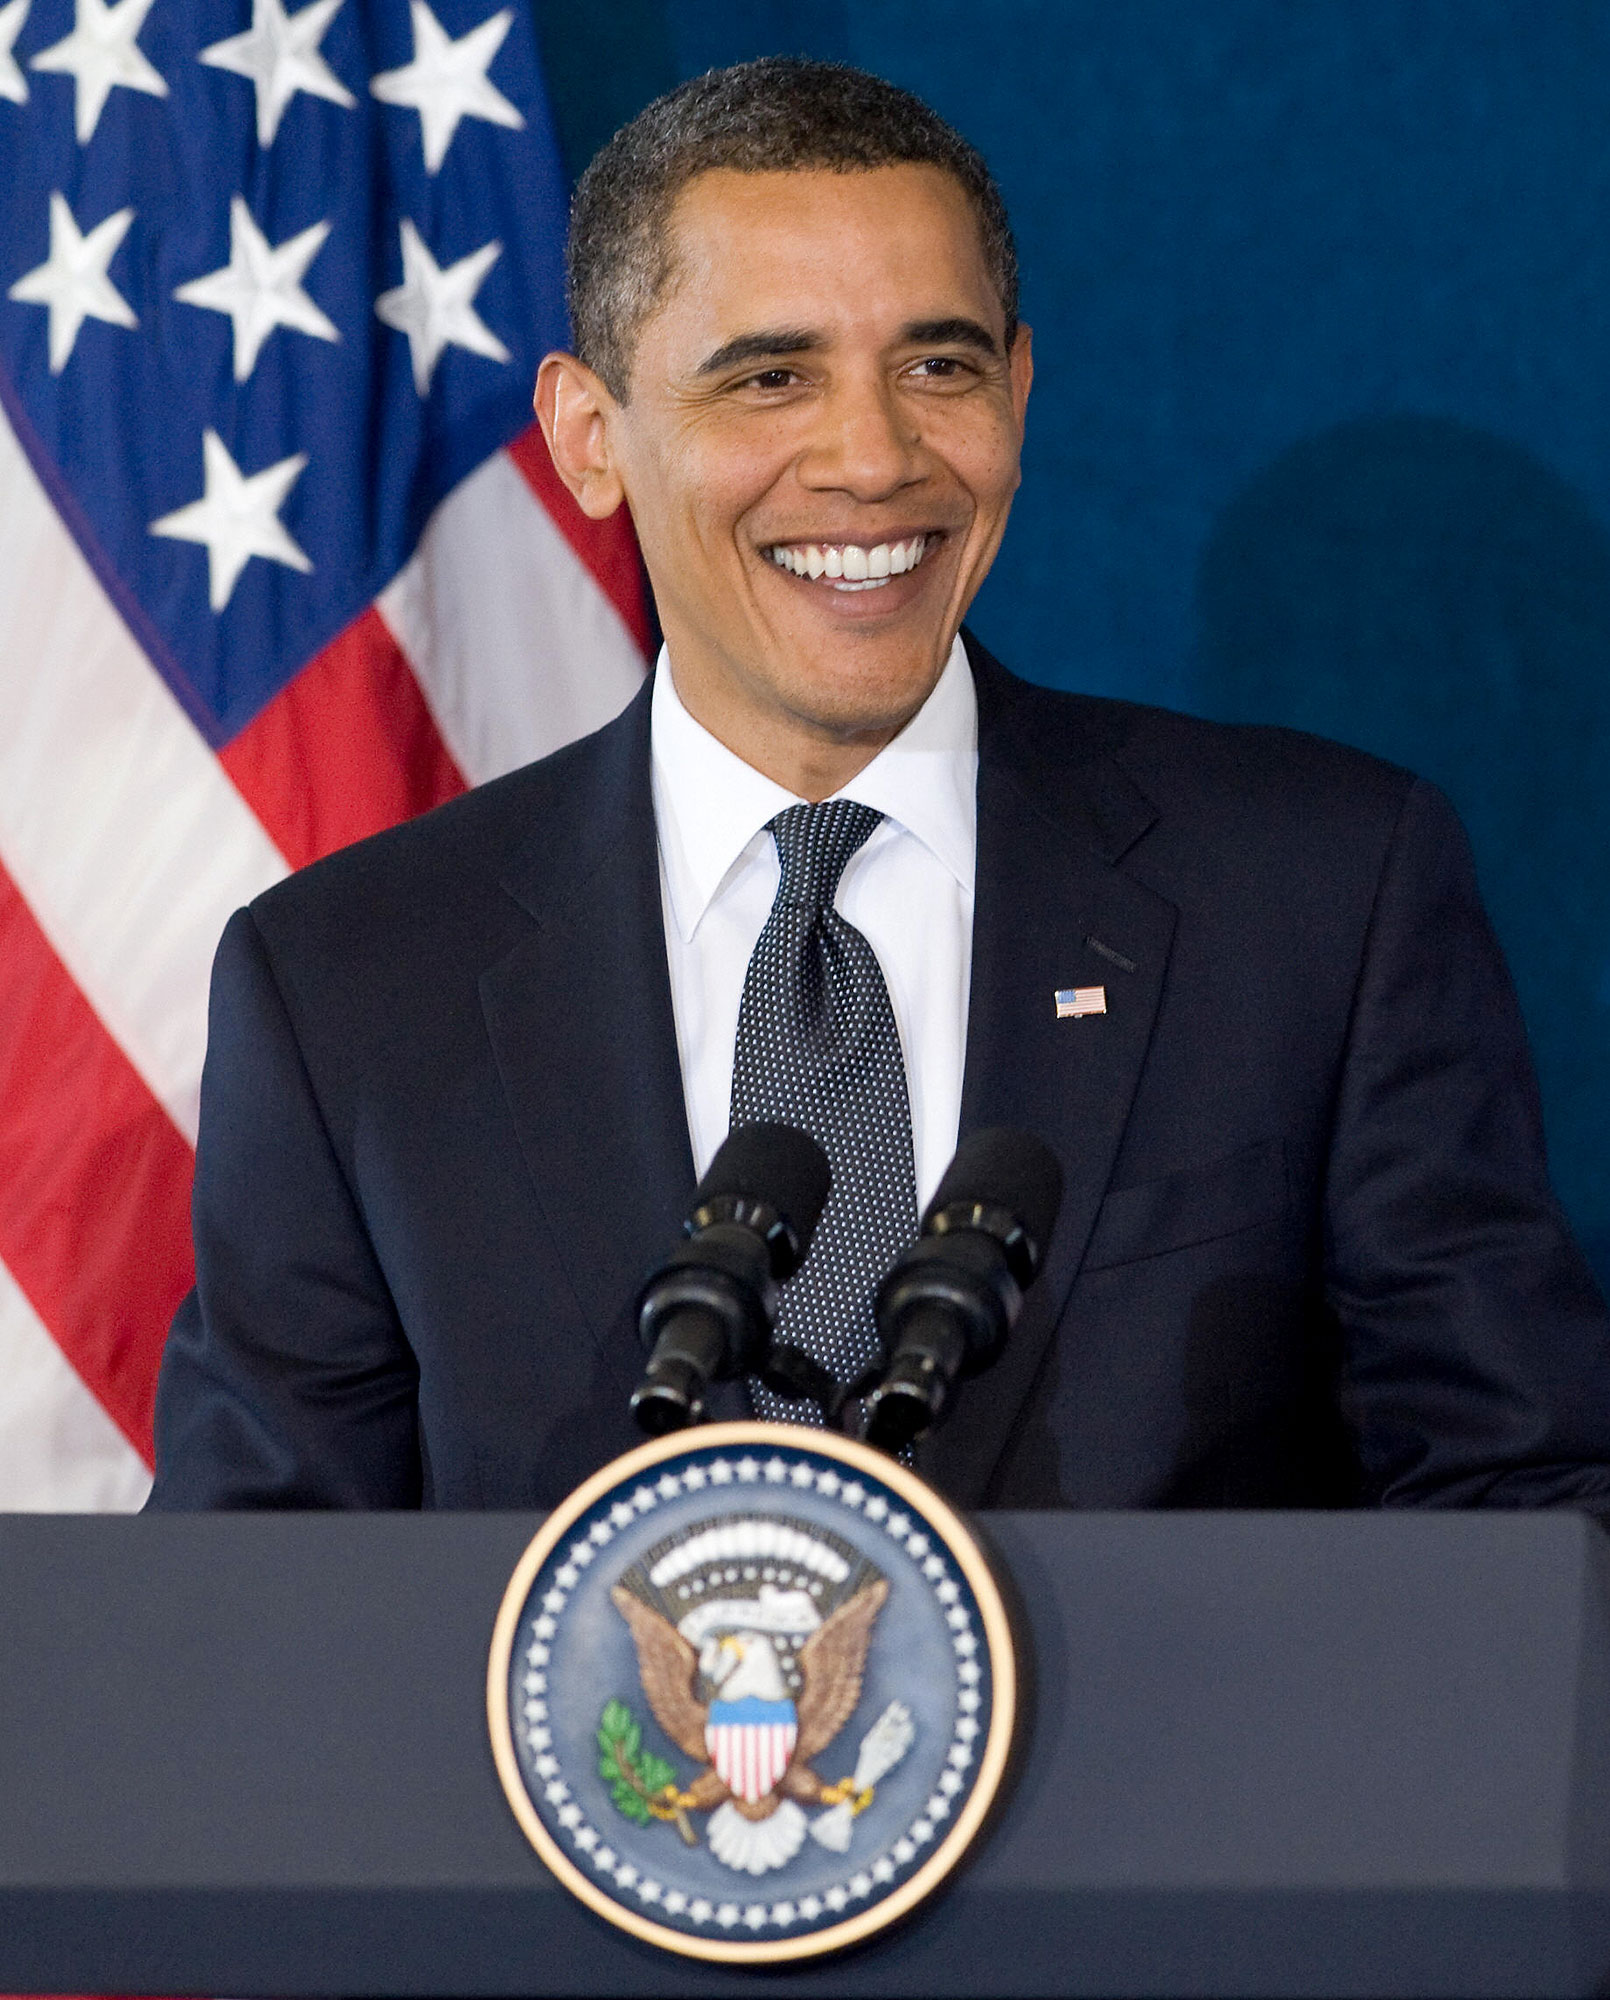 Stars You Wouldn't Expect to Be Grammy Nominees or Winners - US President Barack Obama smiles as he gives during a press conference at the Group of Eight (G8) summit in L'Aquila, central Italy, on July 10, 2009. G8 leaders, including an Africa-bound Barack Obama, vowed today to stand by the world's poor despite the downturn, unveiling a 15 billion dollar boost for food production.